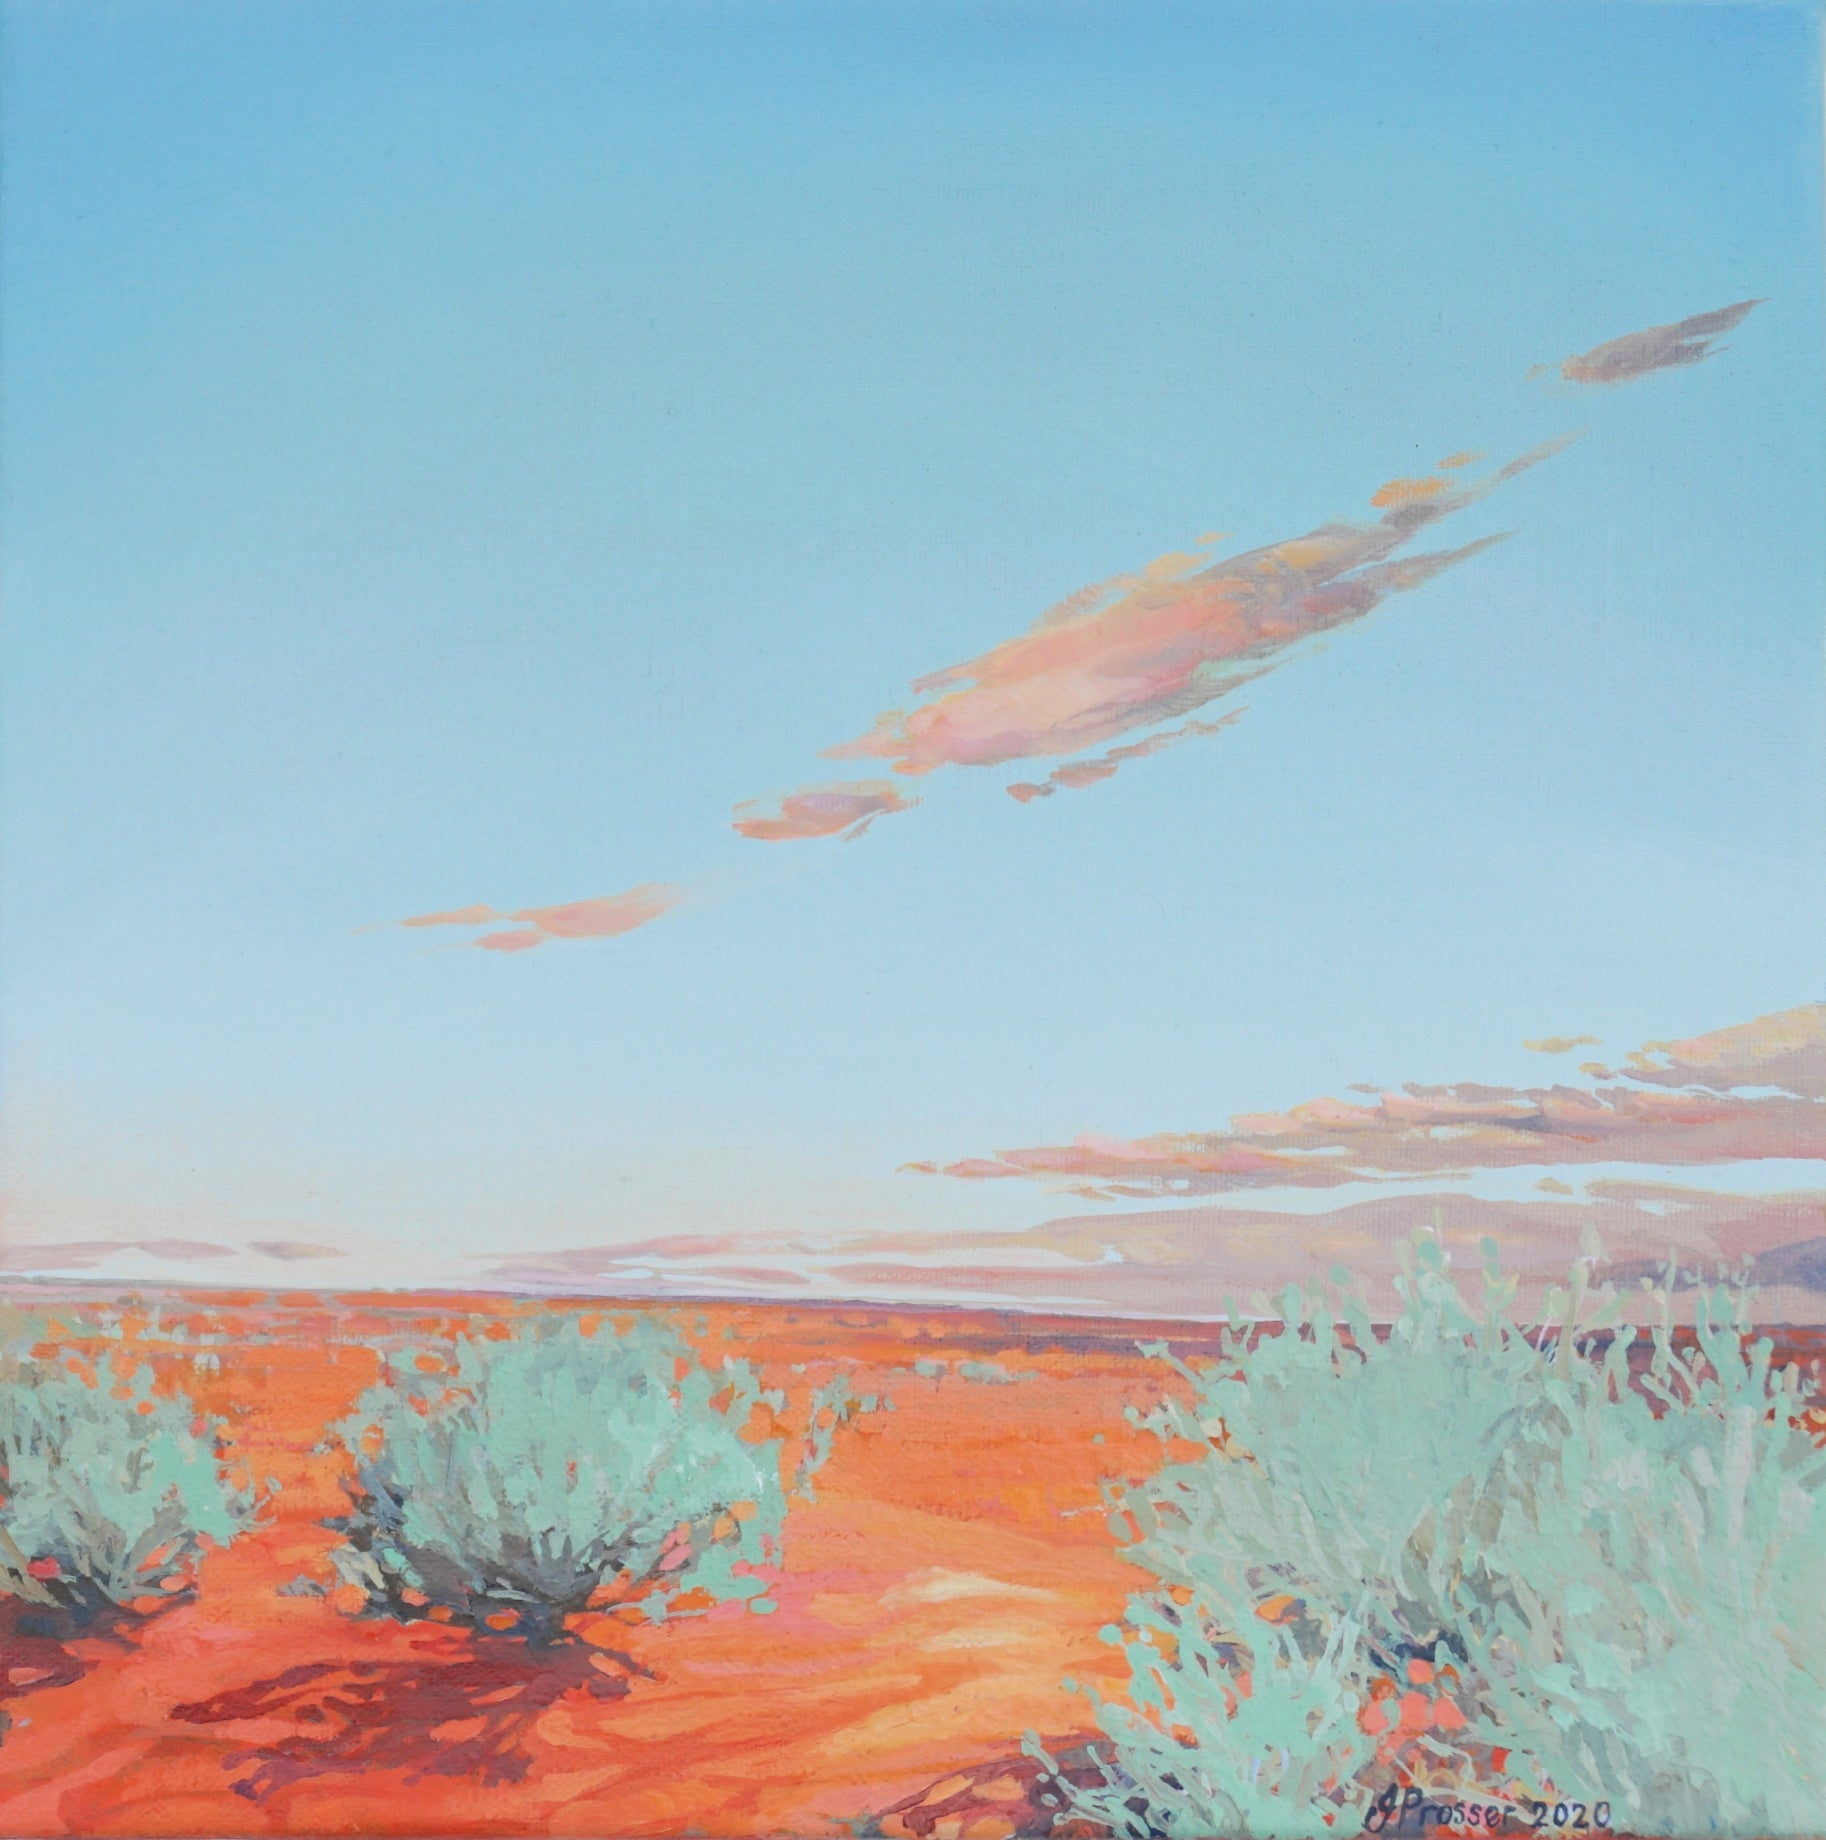 Red Dirt & Blue Sky Australian landscape